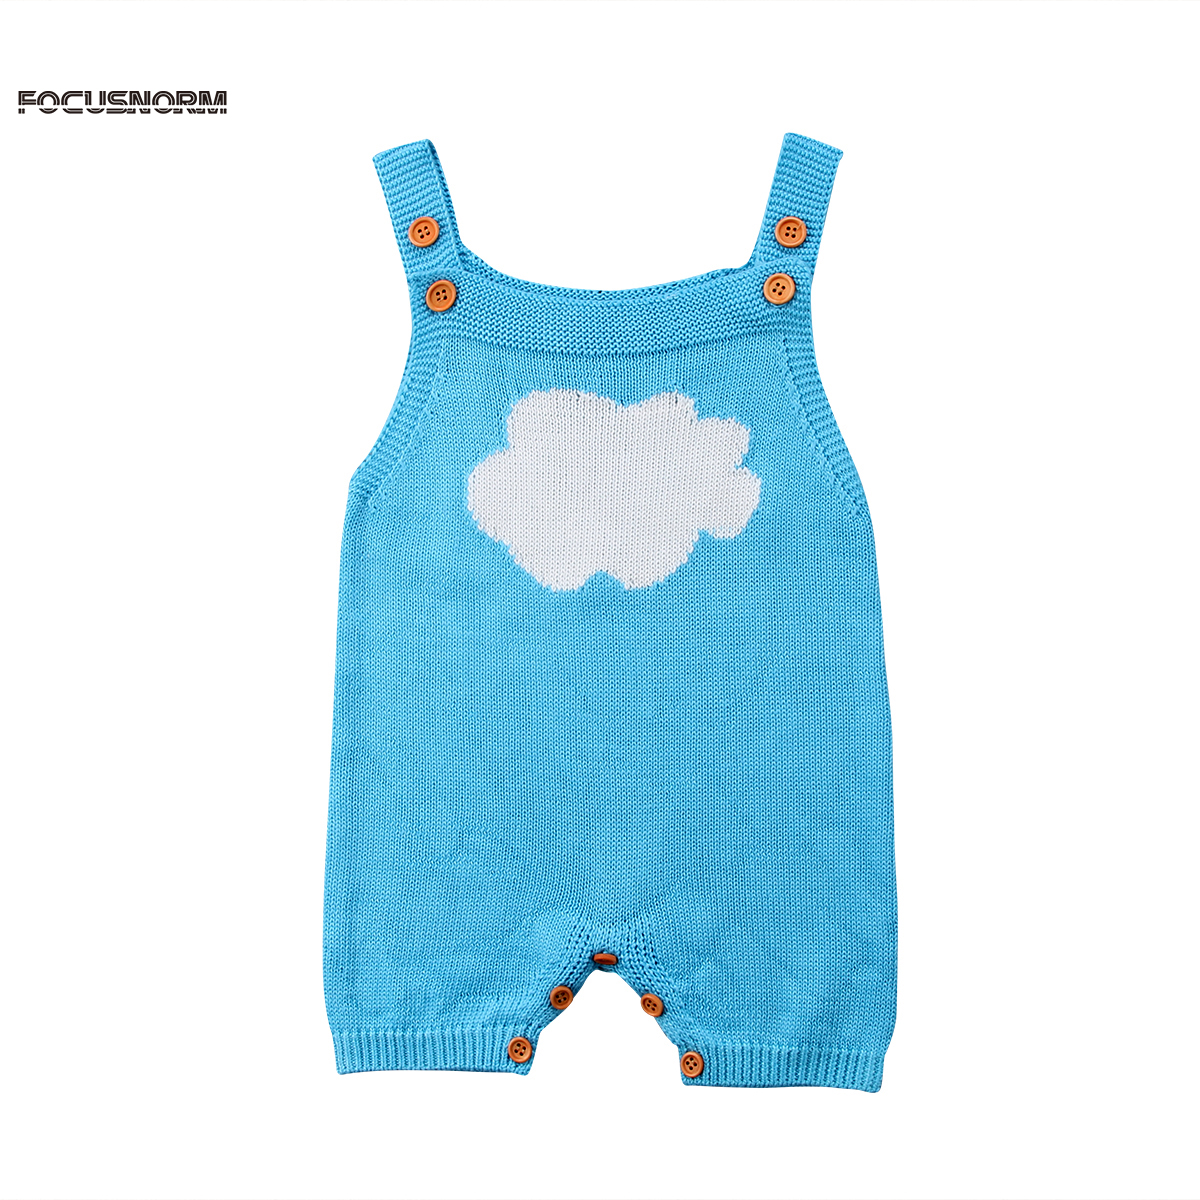 Newborn Infant Kids Baby Boys Girls Cute Suspenders Romper Sunsuit Wool Knitted Outfits Clothes cute newborn infant baby girl clothes set girls romper letter printed bodysuit floral tutu skirted bloomers short outfit sunsuit